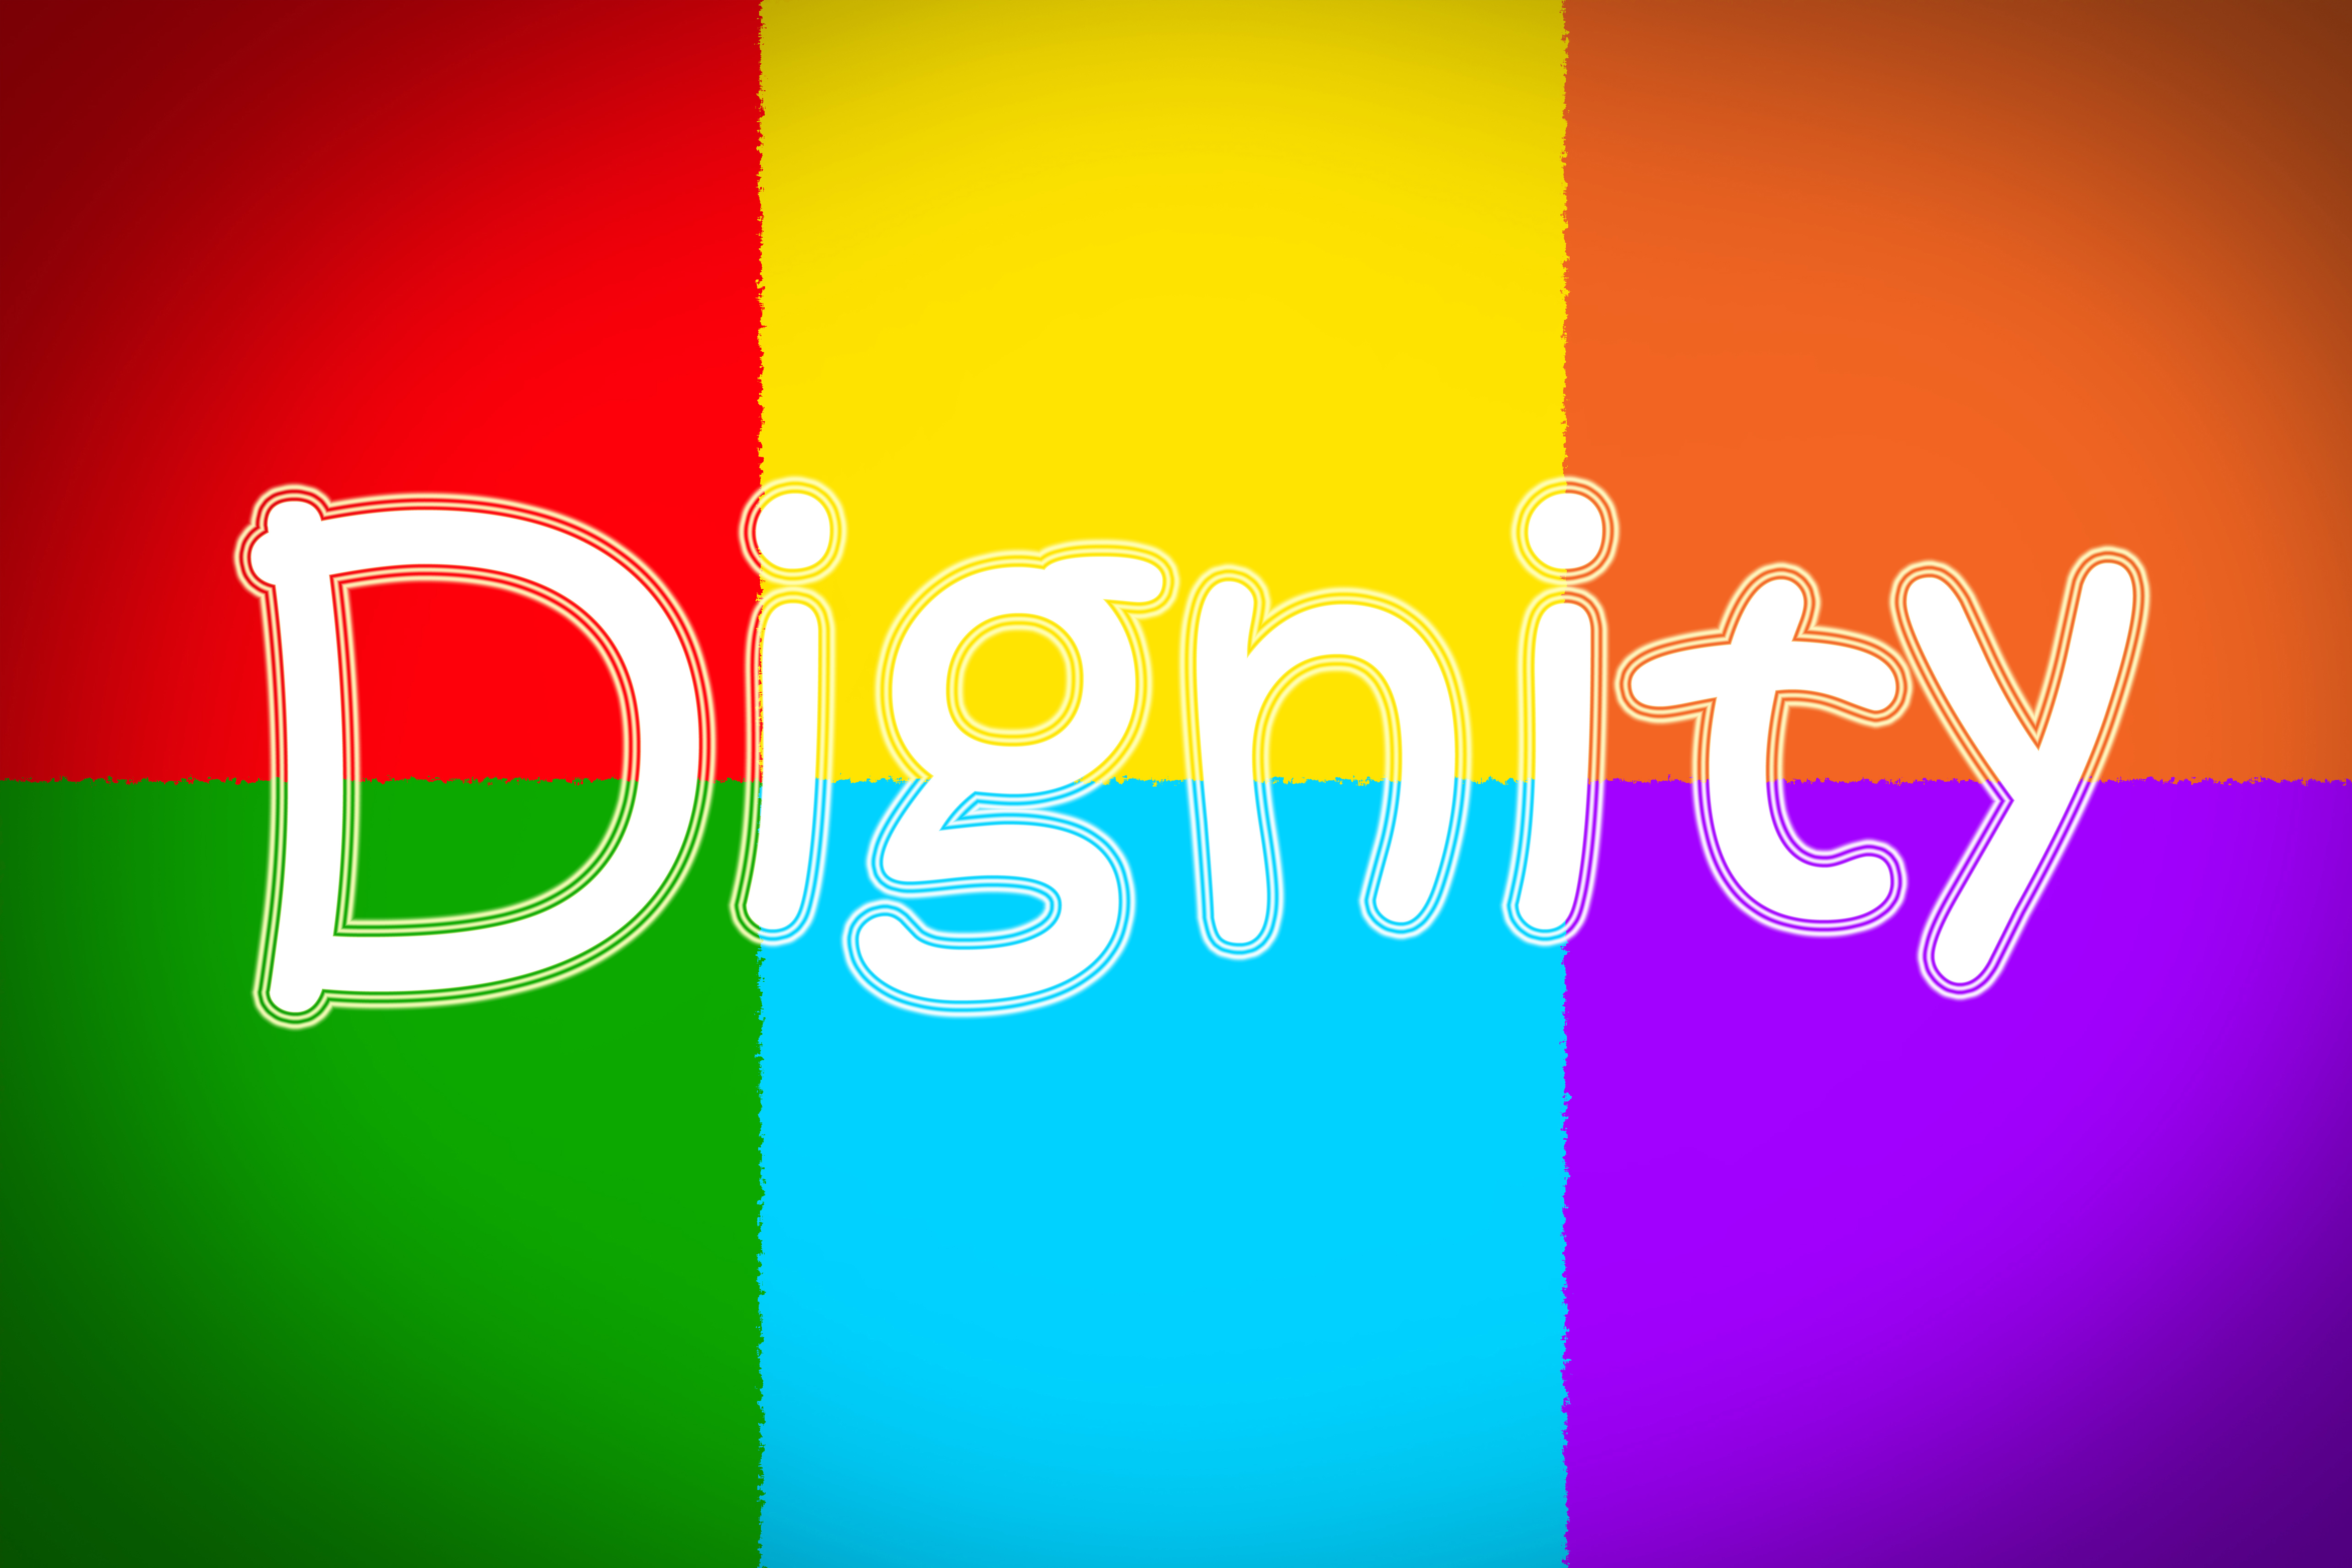 Scalia and Thomas Dissents – What about Dignity? Part 3 of 3